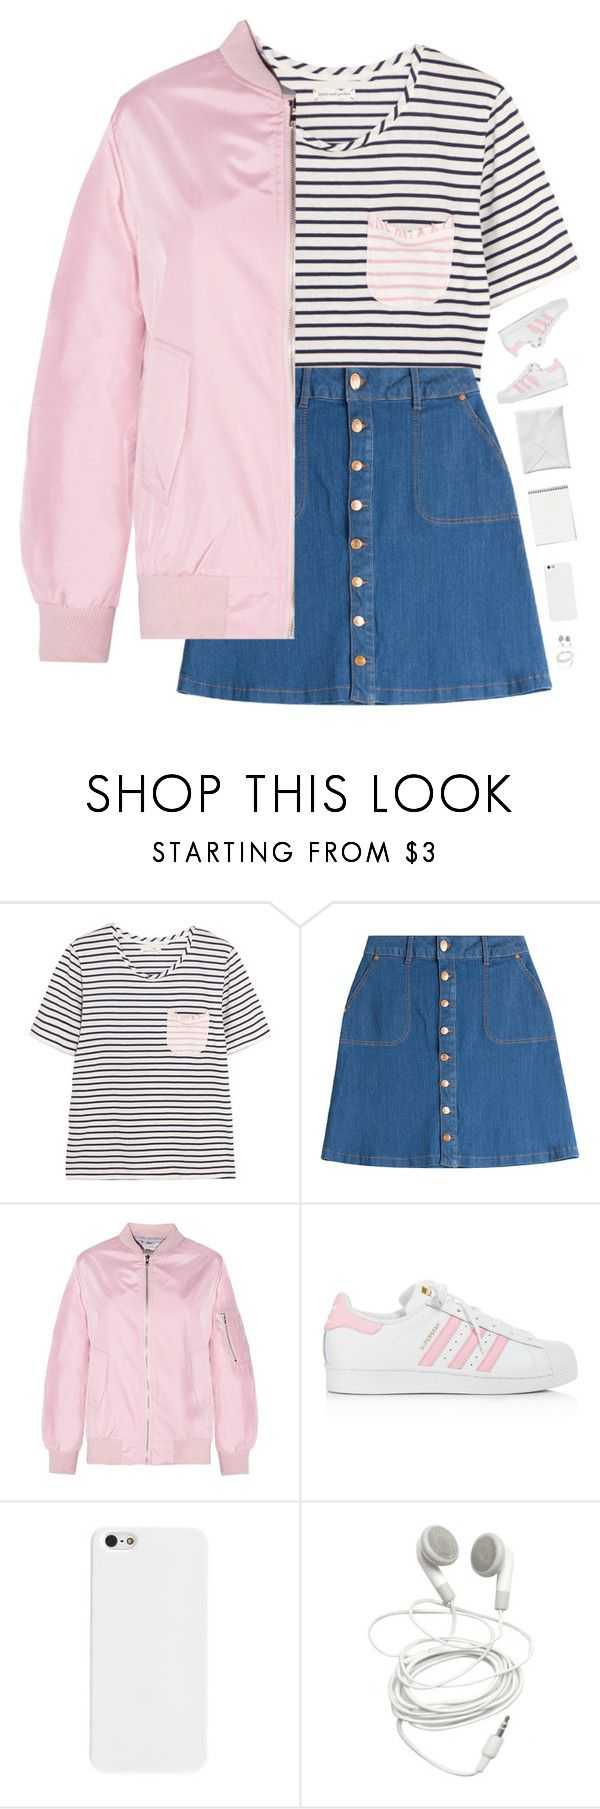 """Am I tumblr yet?"" by genesis129 ❤ liked on Polyvore featuring Chinti and Parker, HUGO, adidas and vintage"